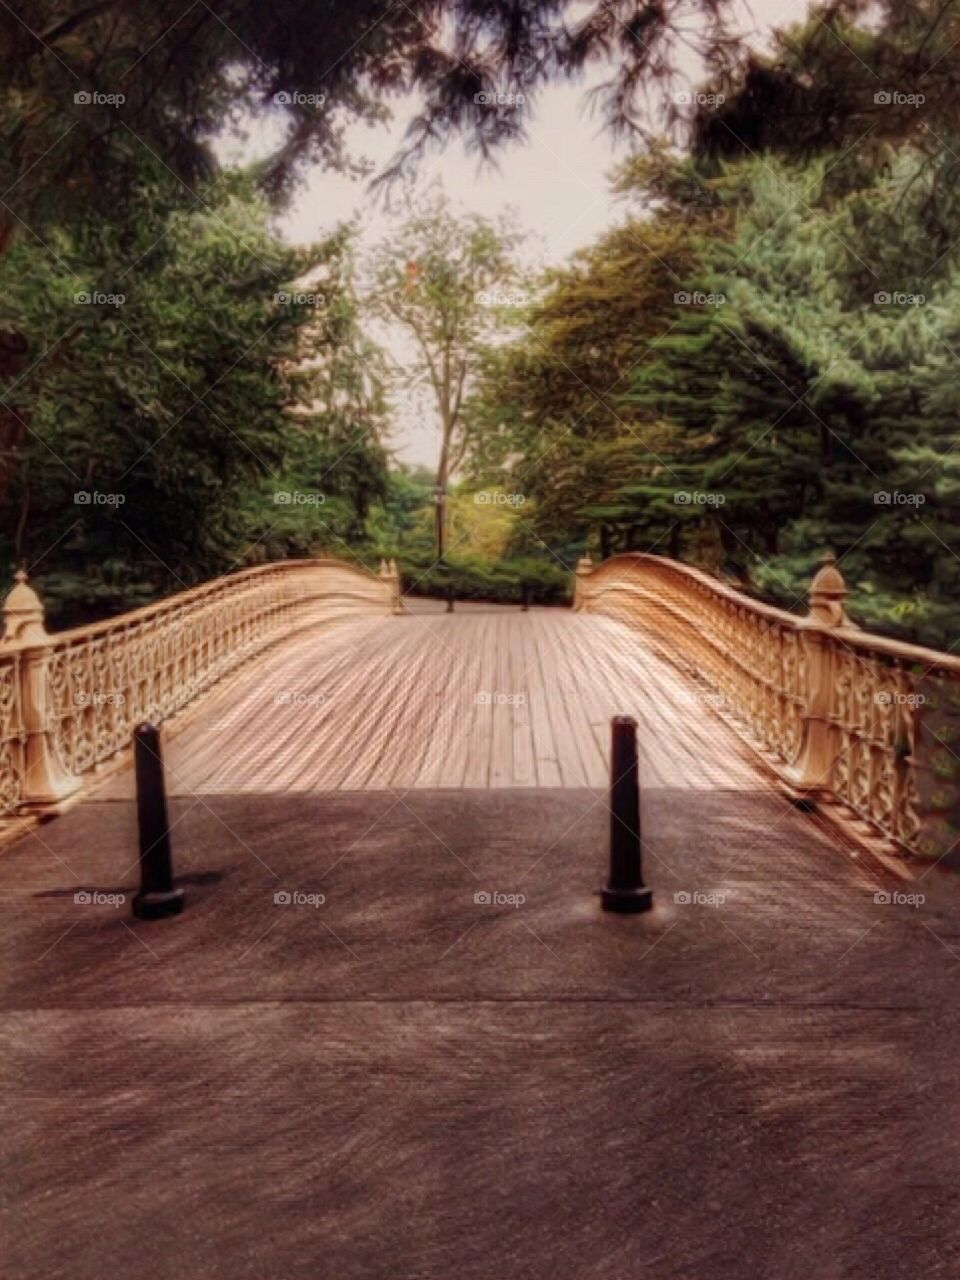 Outdoors/Nature/Landscape, Pine Bank Arch Bridge  - Central Park, Manhattan, New York City. Instagram,@PennyPeronto